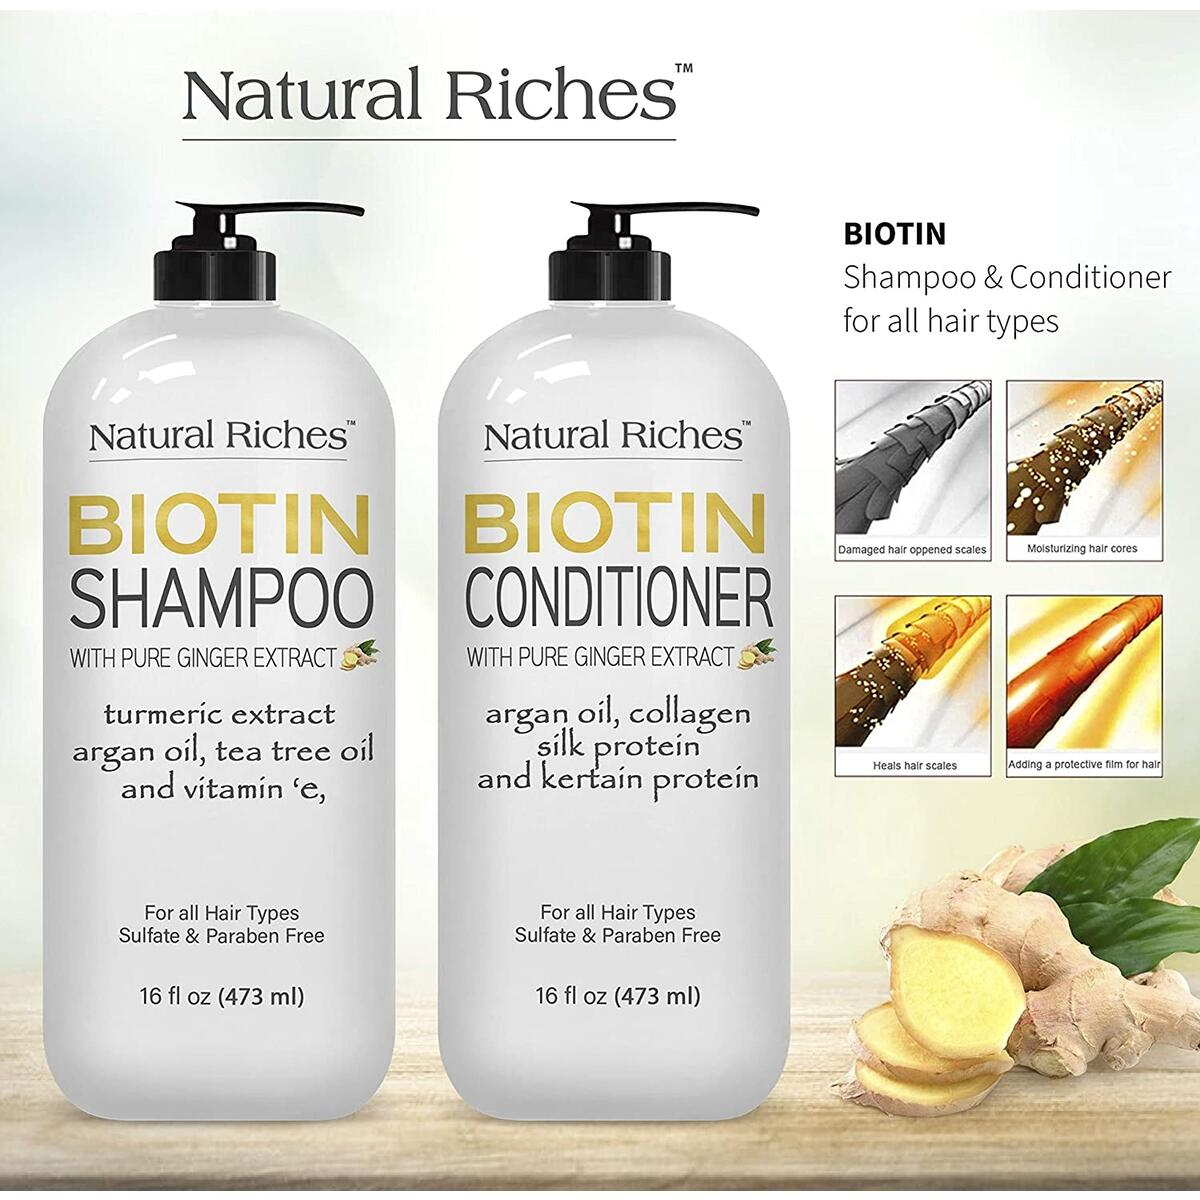 New Natural Riches Biotin Shampoo and Conditioner Set – W/Ginger Turmeric Extract & Keratin for Hair follicle Hair Loss and Thinning Hair gives Fuller Thicker Hair Sulfate free 2X16 fl oz.…